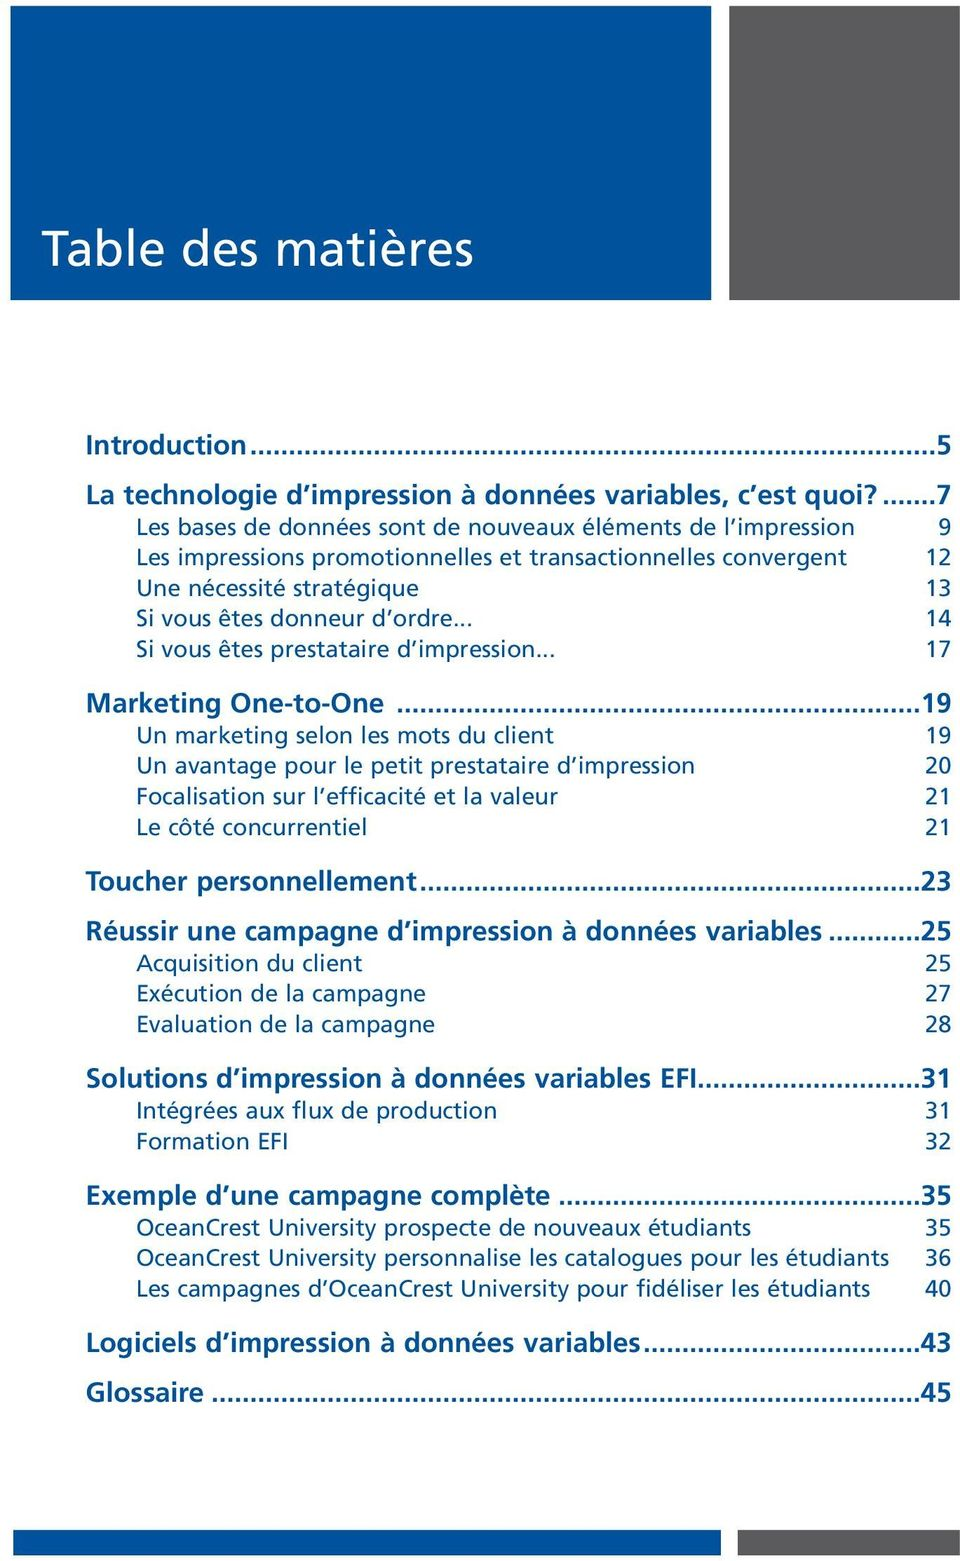 .. 14 Si vous êtes prestataire d impression... 17 Marketing One-to-One.